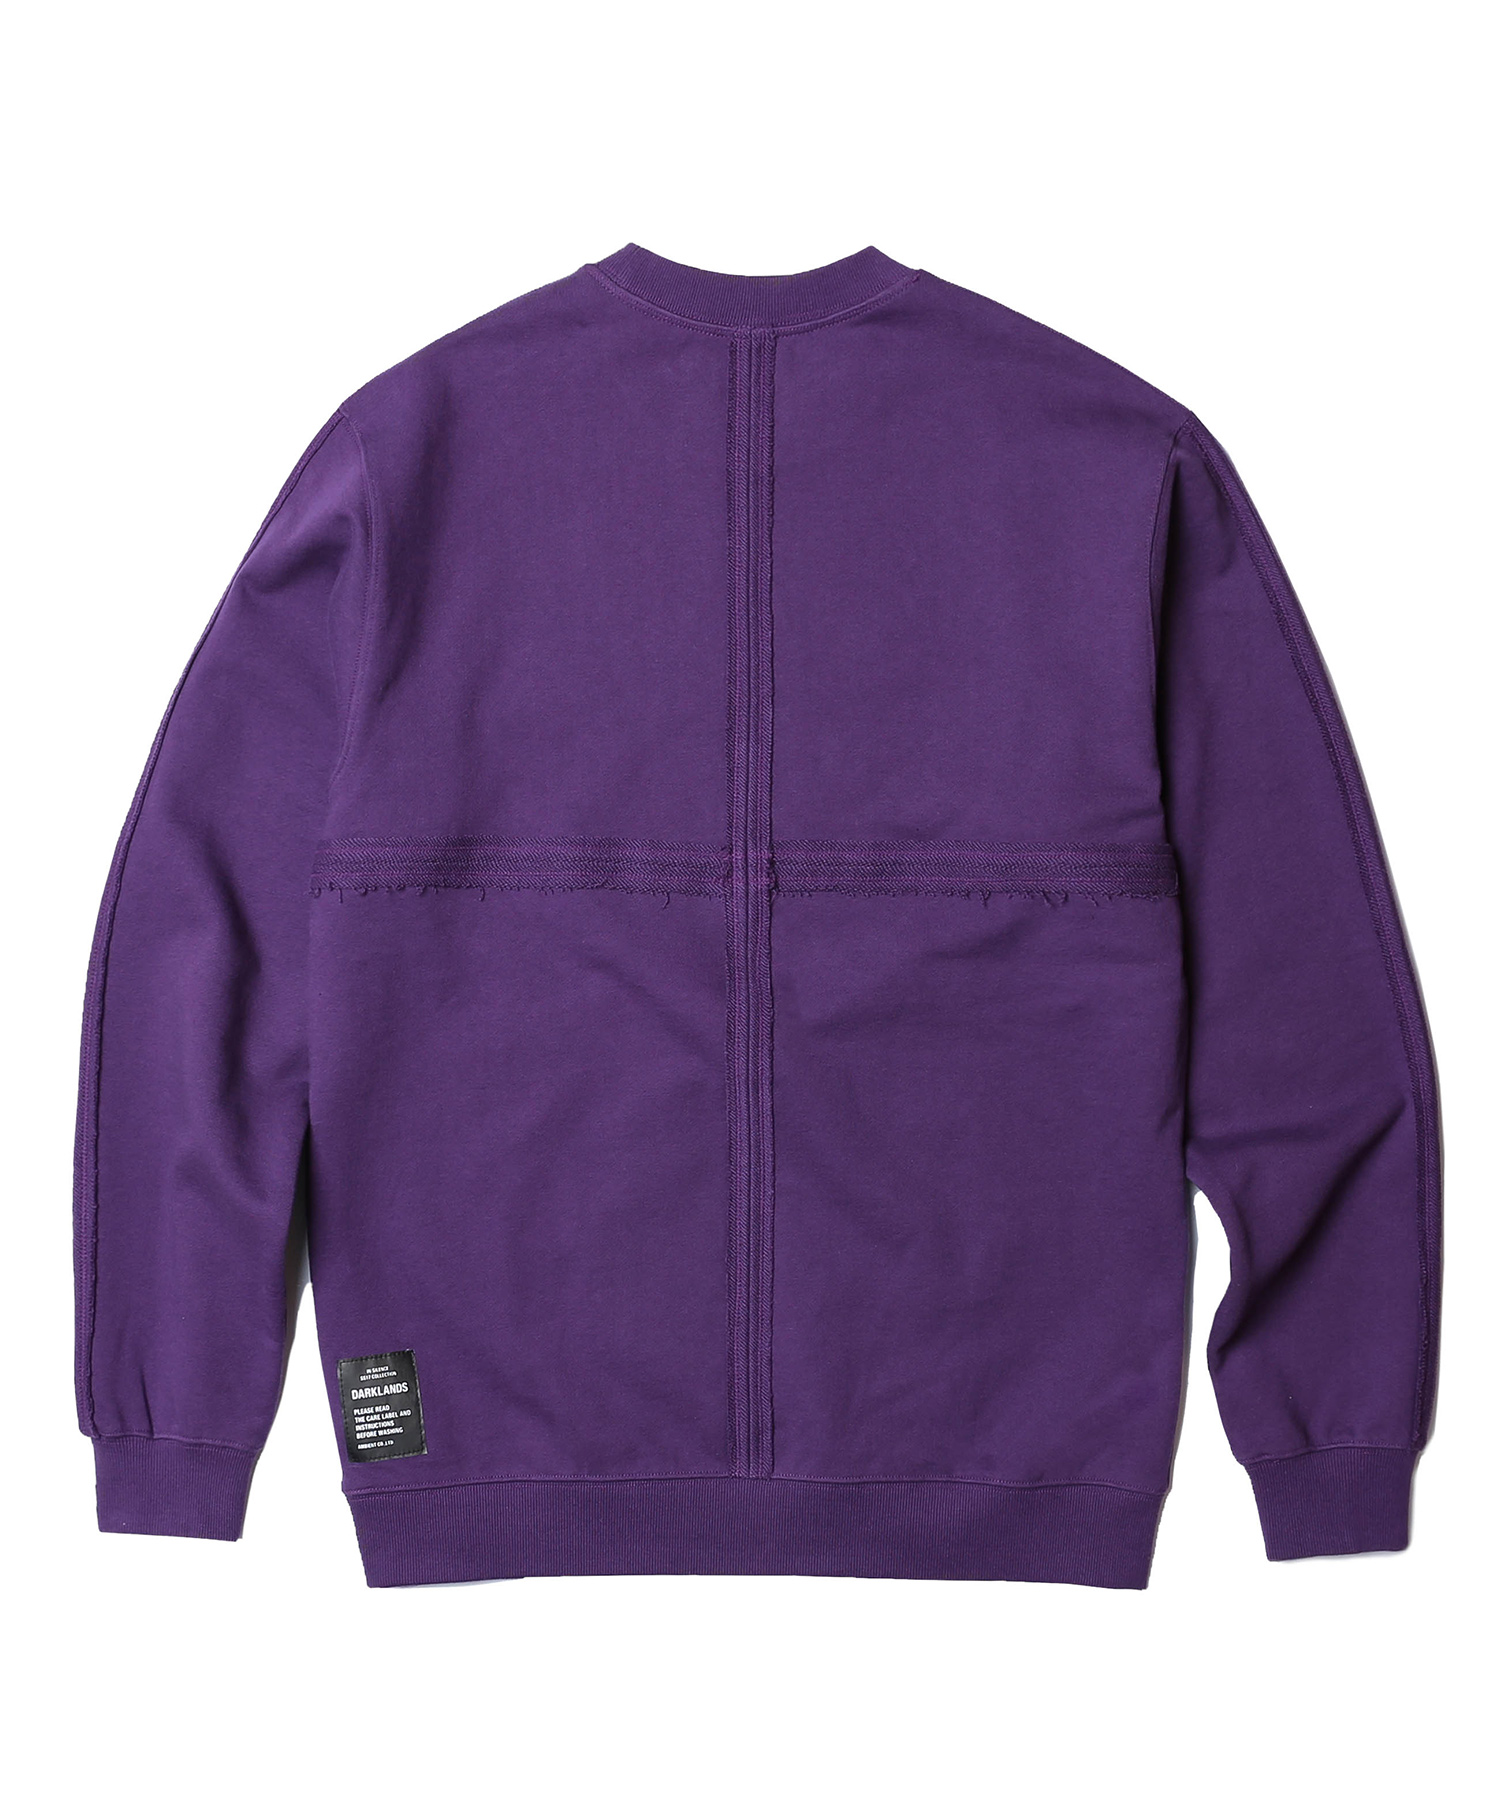 SL Sweatshirt (Purple)